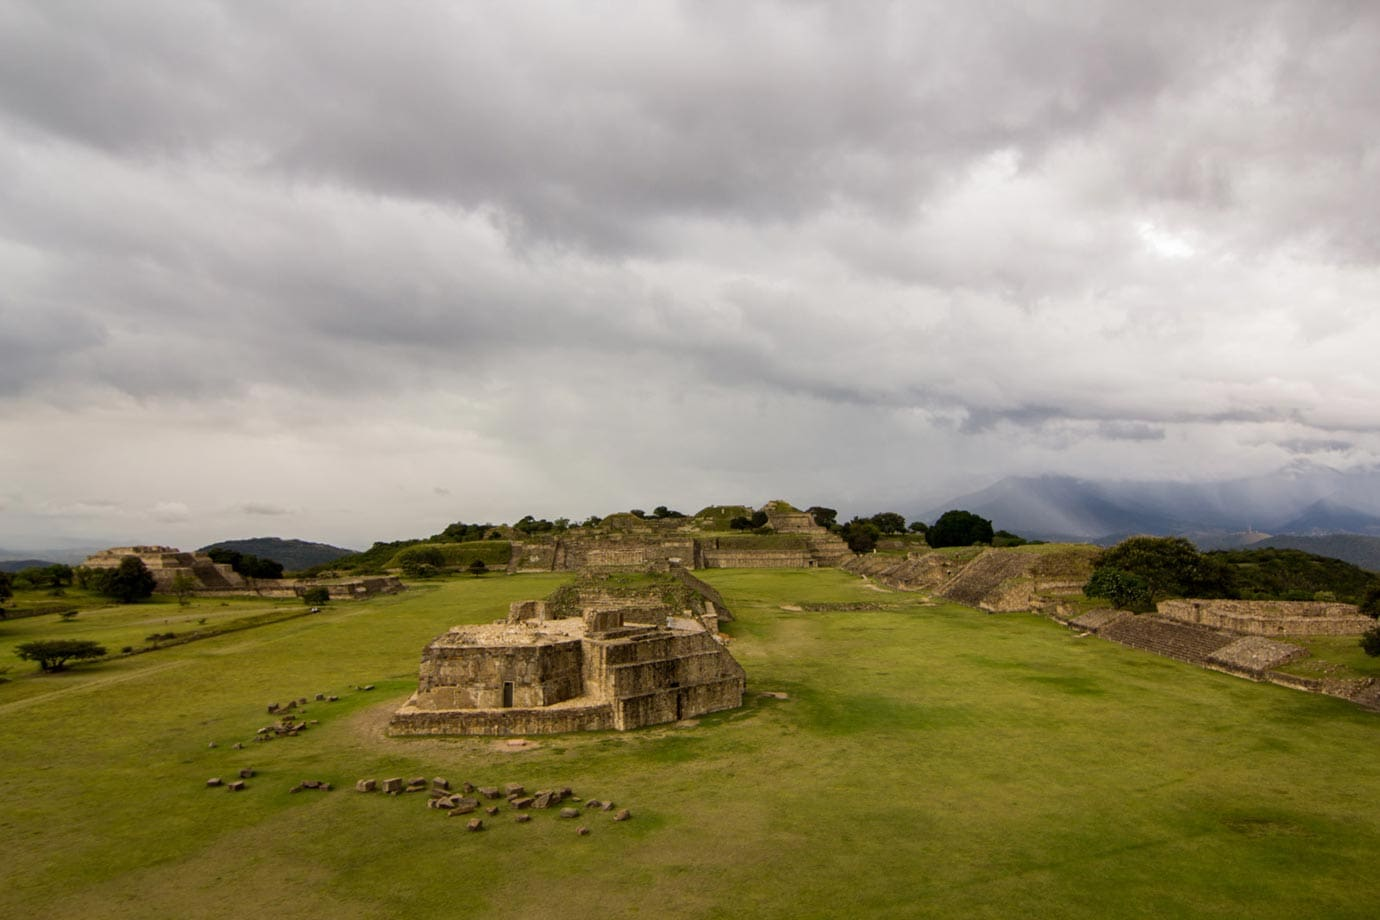 The ancient city of Monte Alban is found high up in the mountains